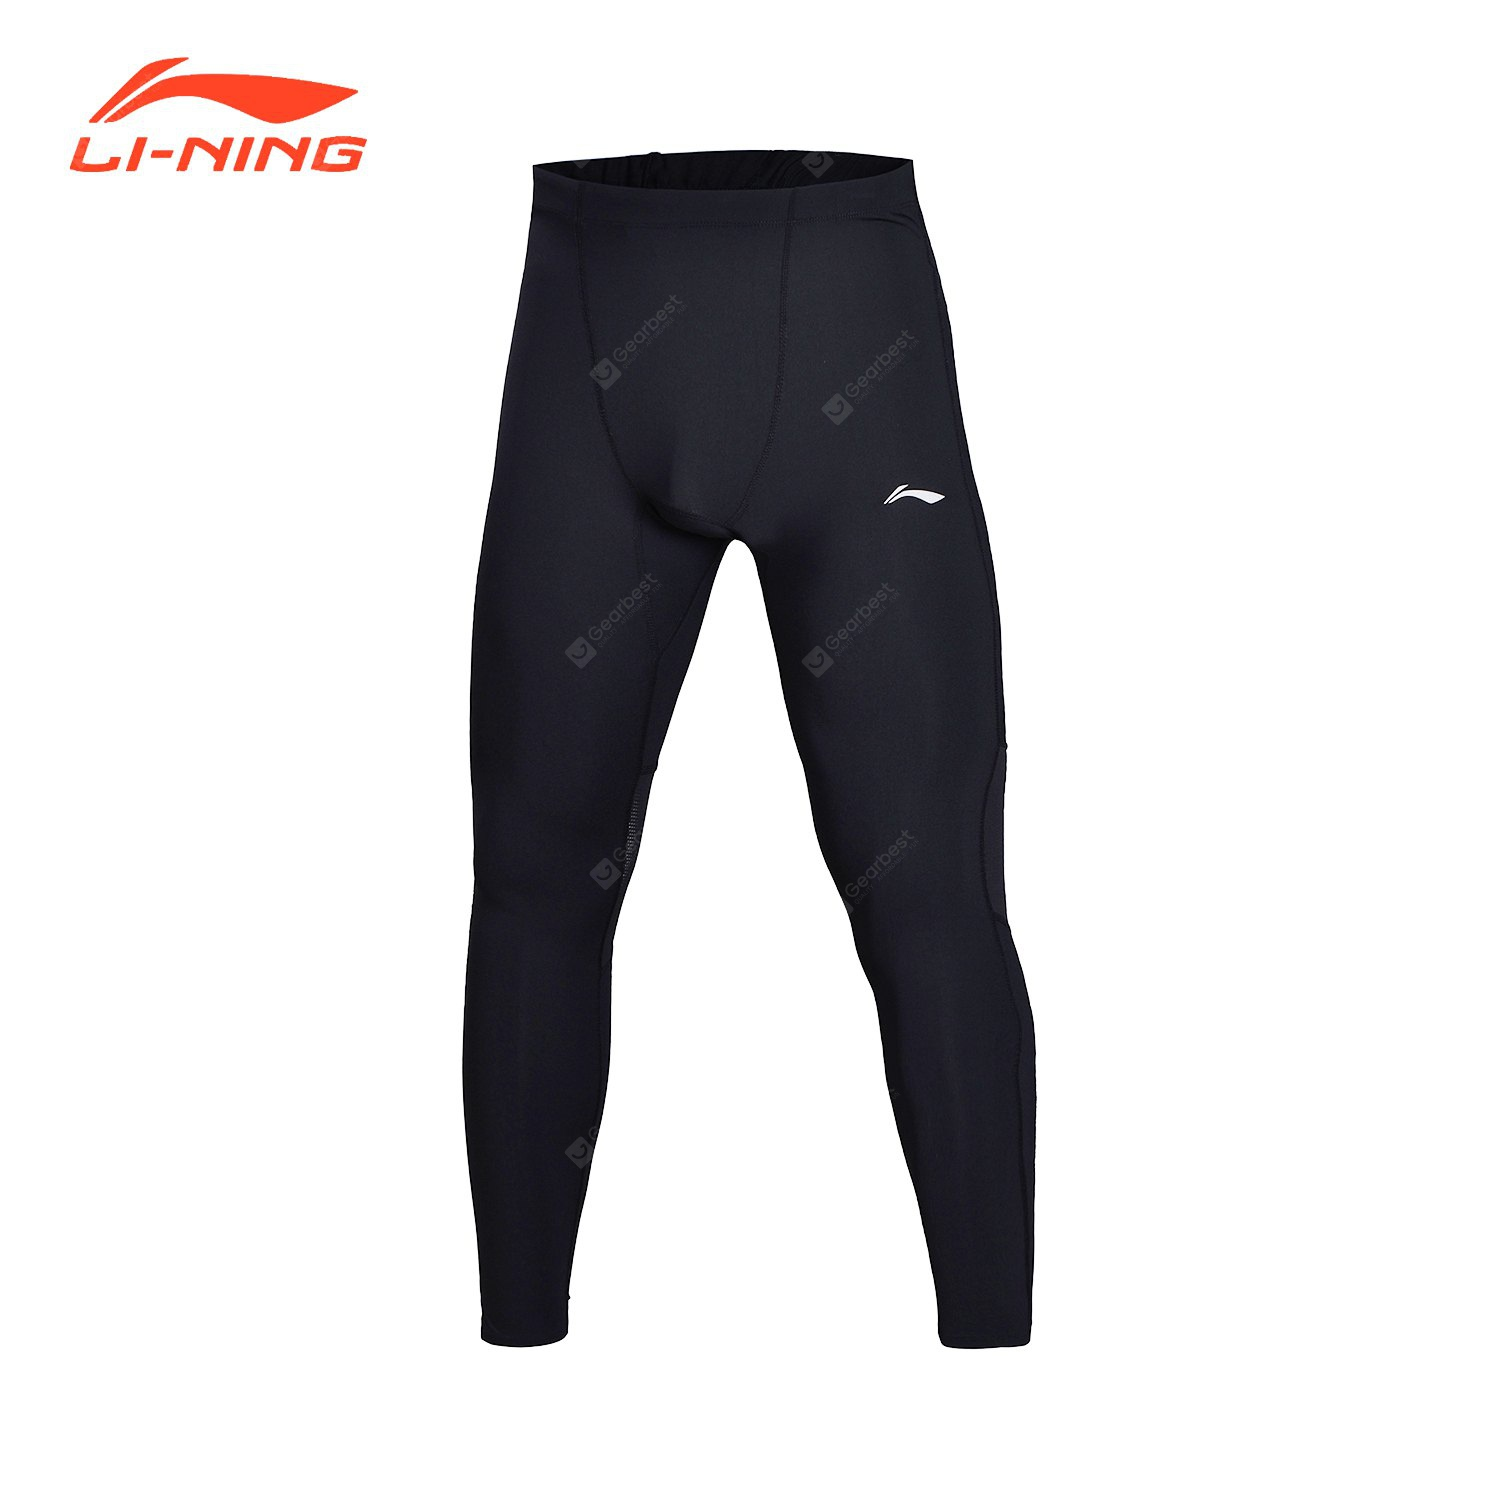 Li-Ning Men's  PRO Jogger Sports With Back Bag Layer Pants  AULN001-1